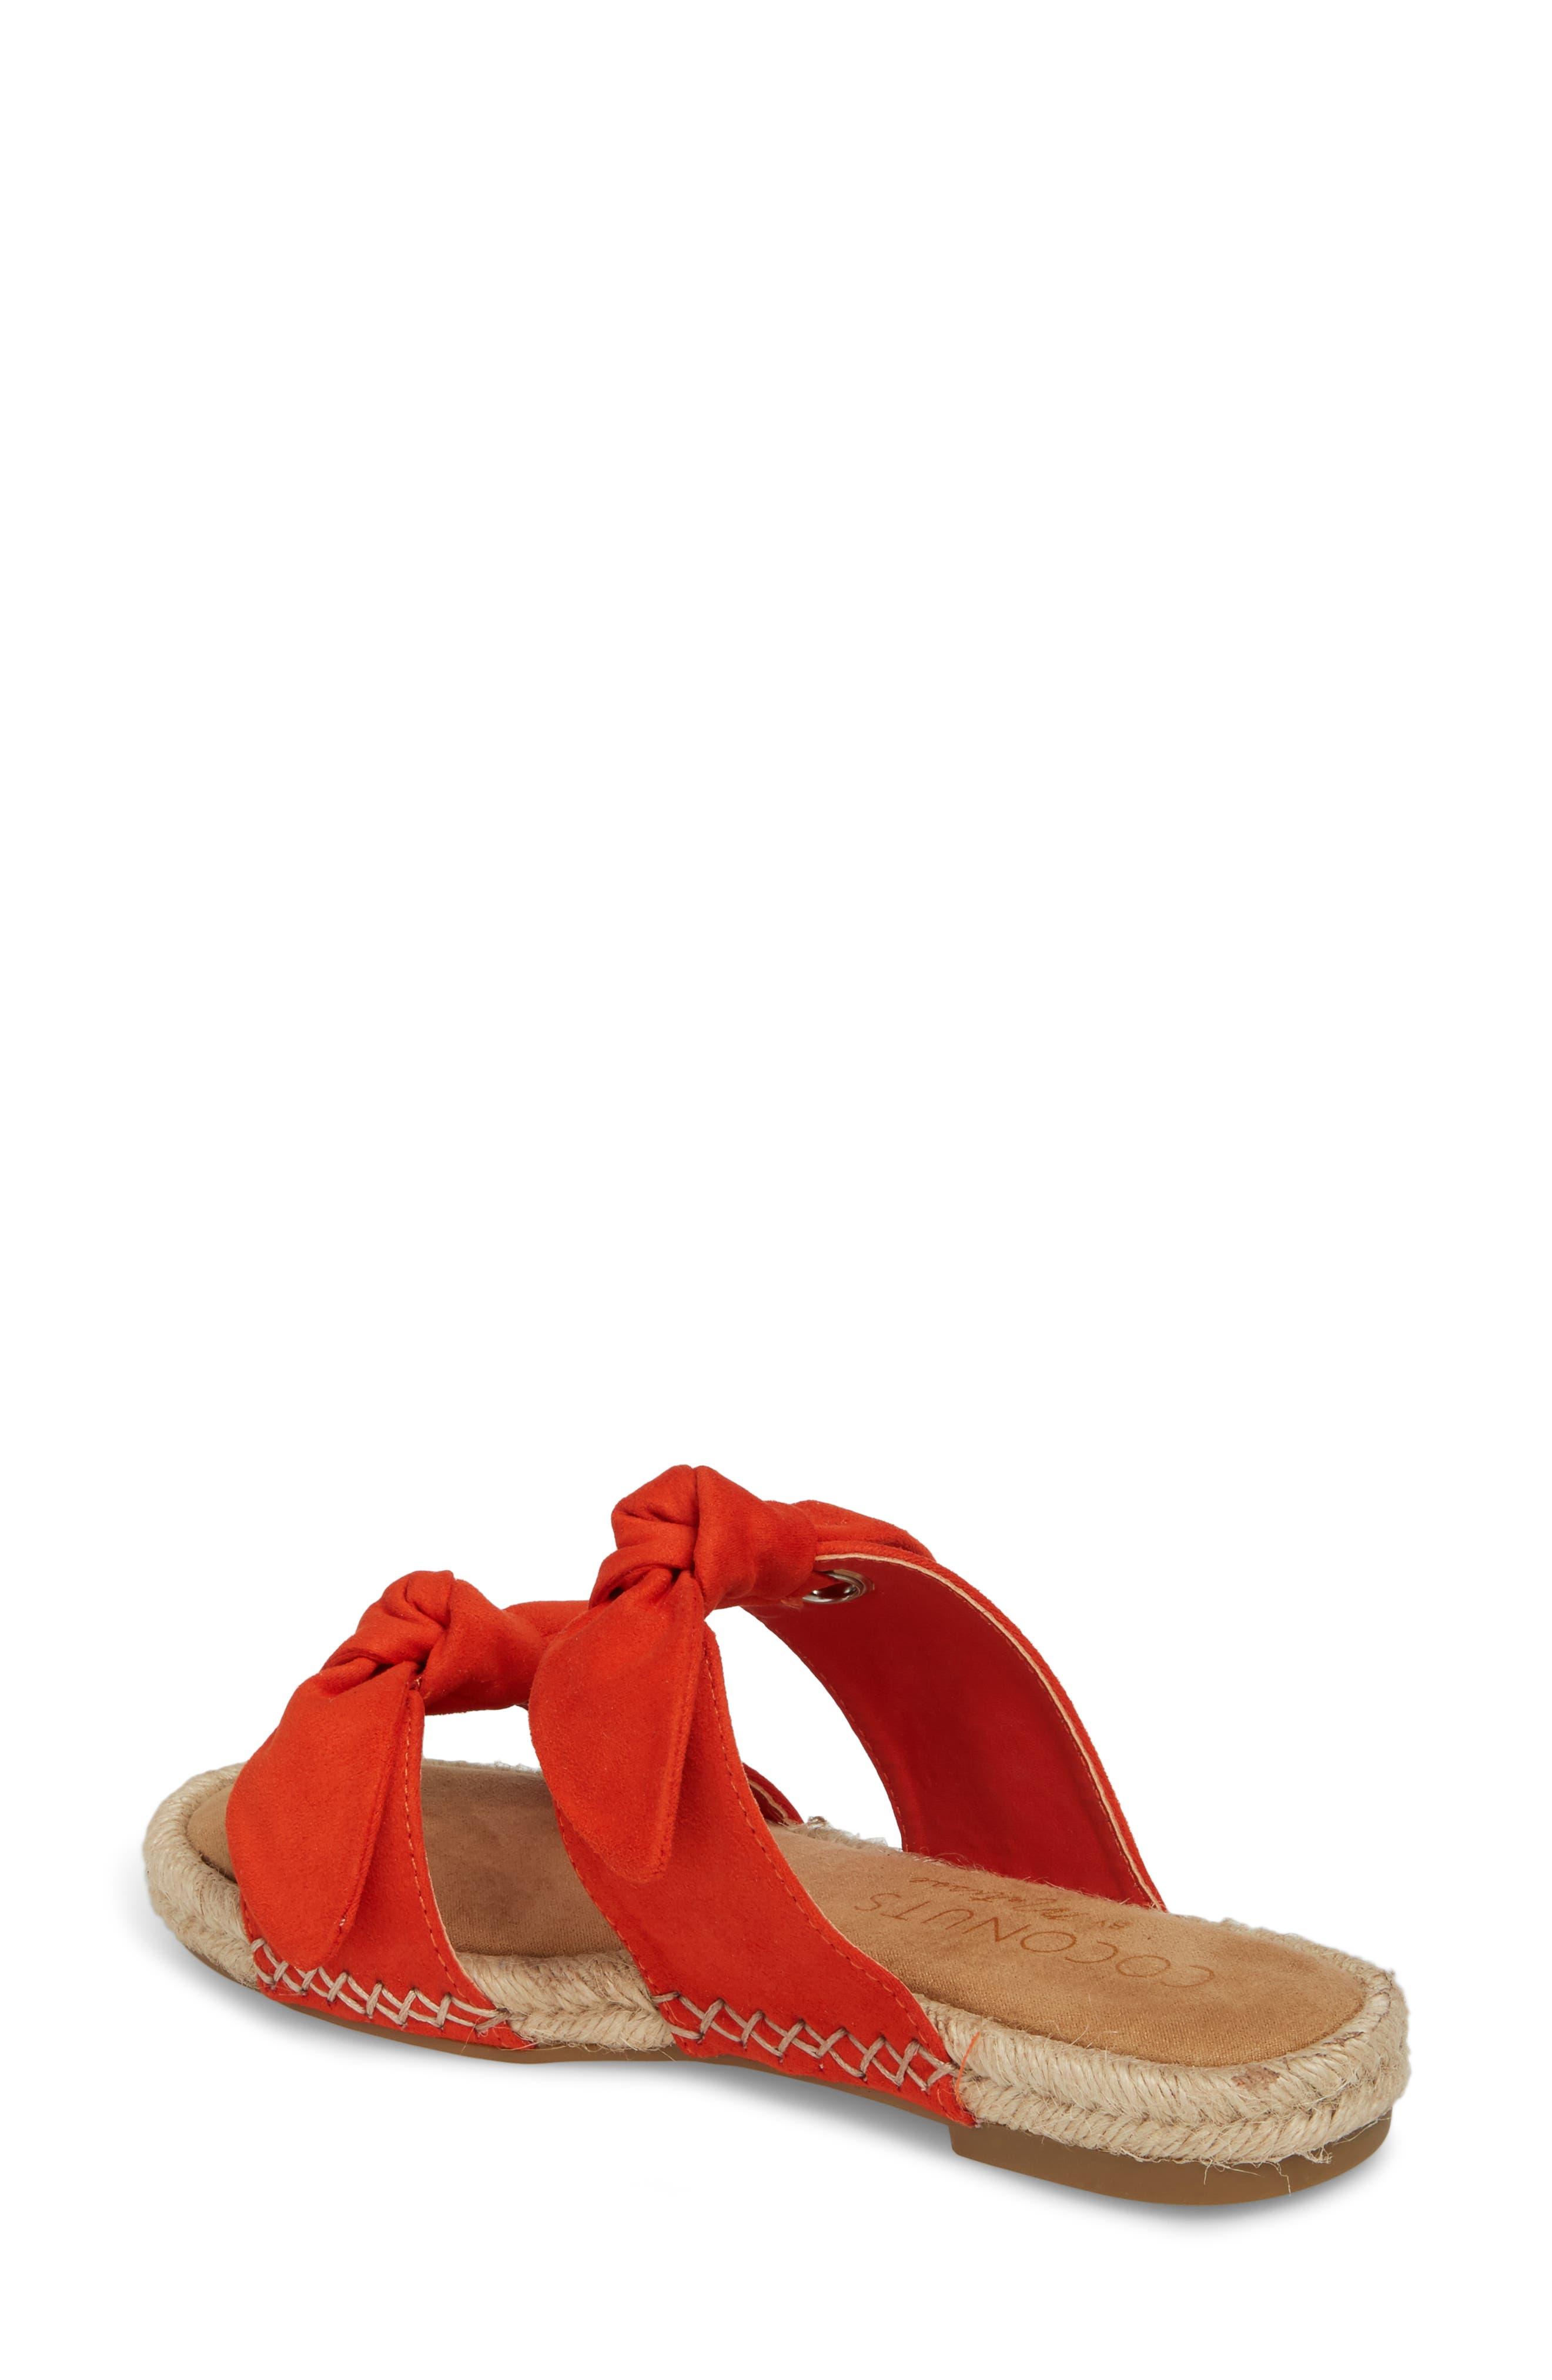 Gianna Espadrille Slide Sandal,                             Alternate thumbnail 2, color,                             Fire Suede